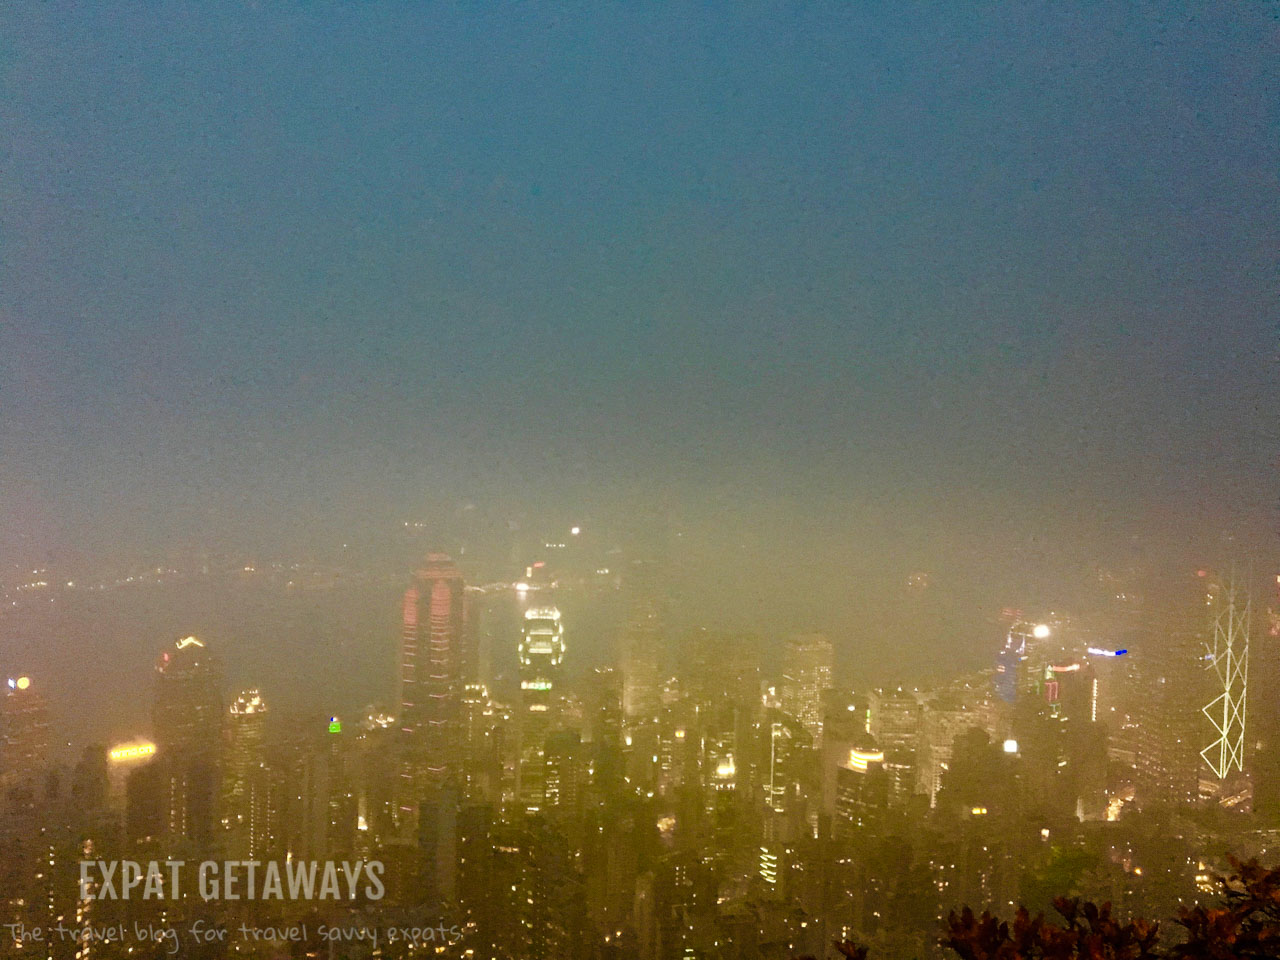 Spring weather is unpredictable. The weather warms up, but visibility can be poor. Expat Getaways, First Time Hong Kong Survival Guide - weather and seasons.